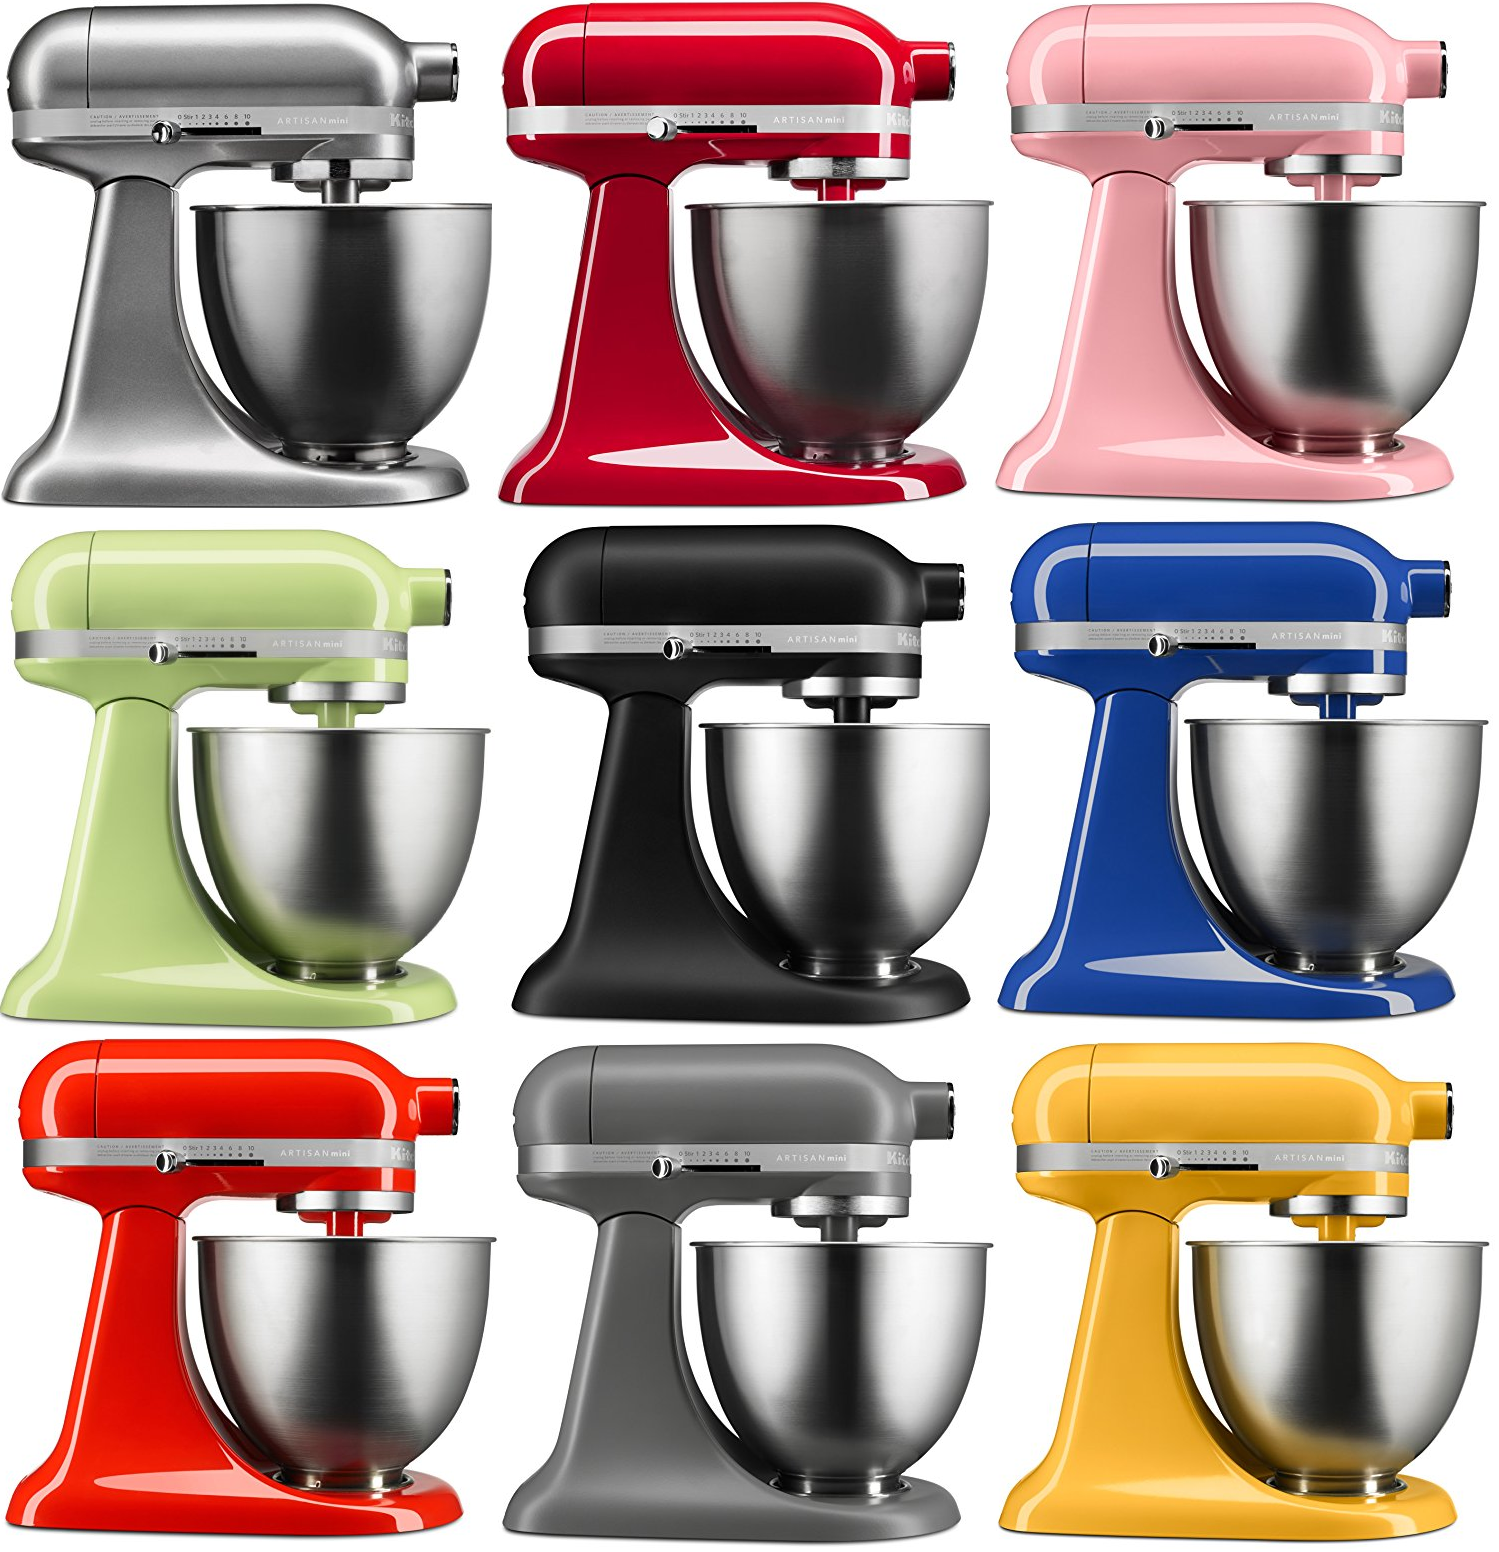 Kitchenaid Mixer Colors Deptis Com Gt Inspirierendes